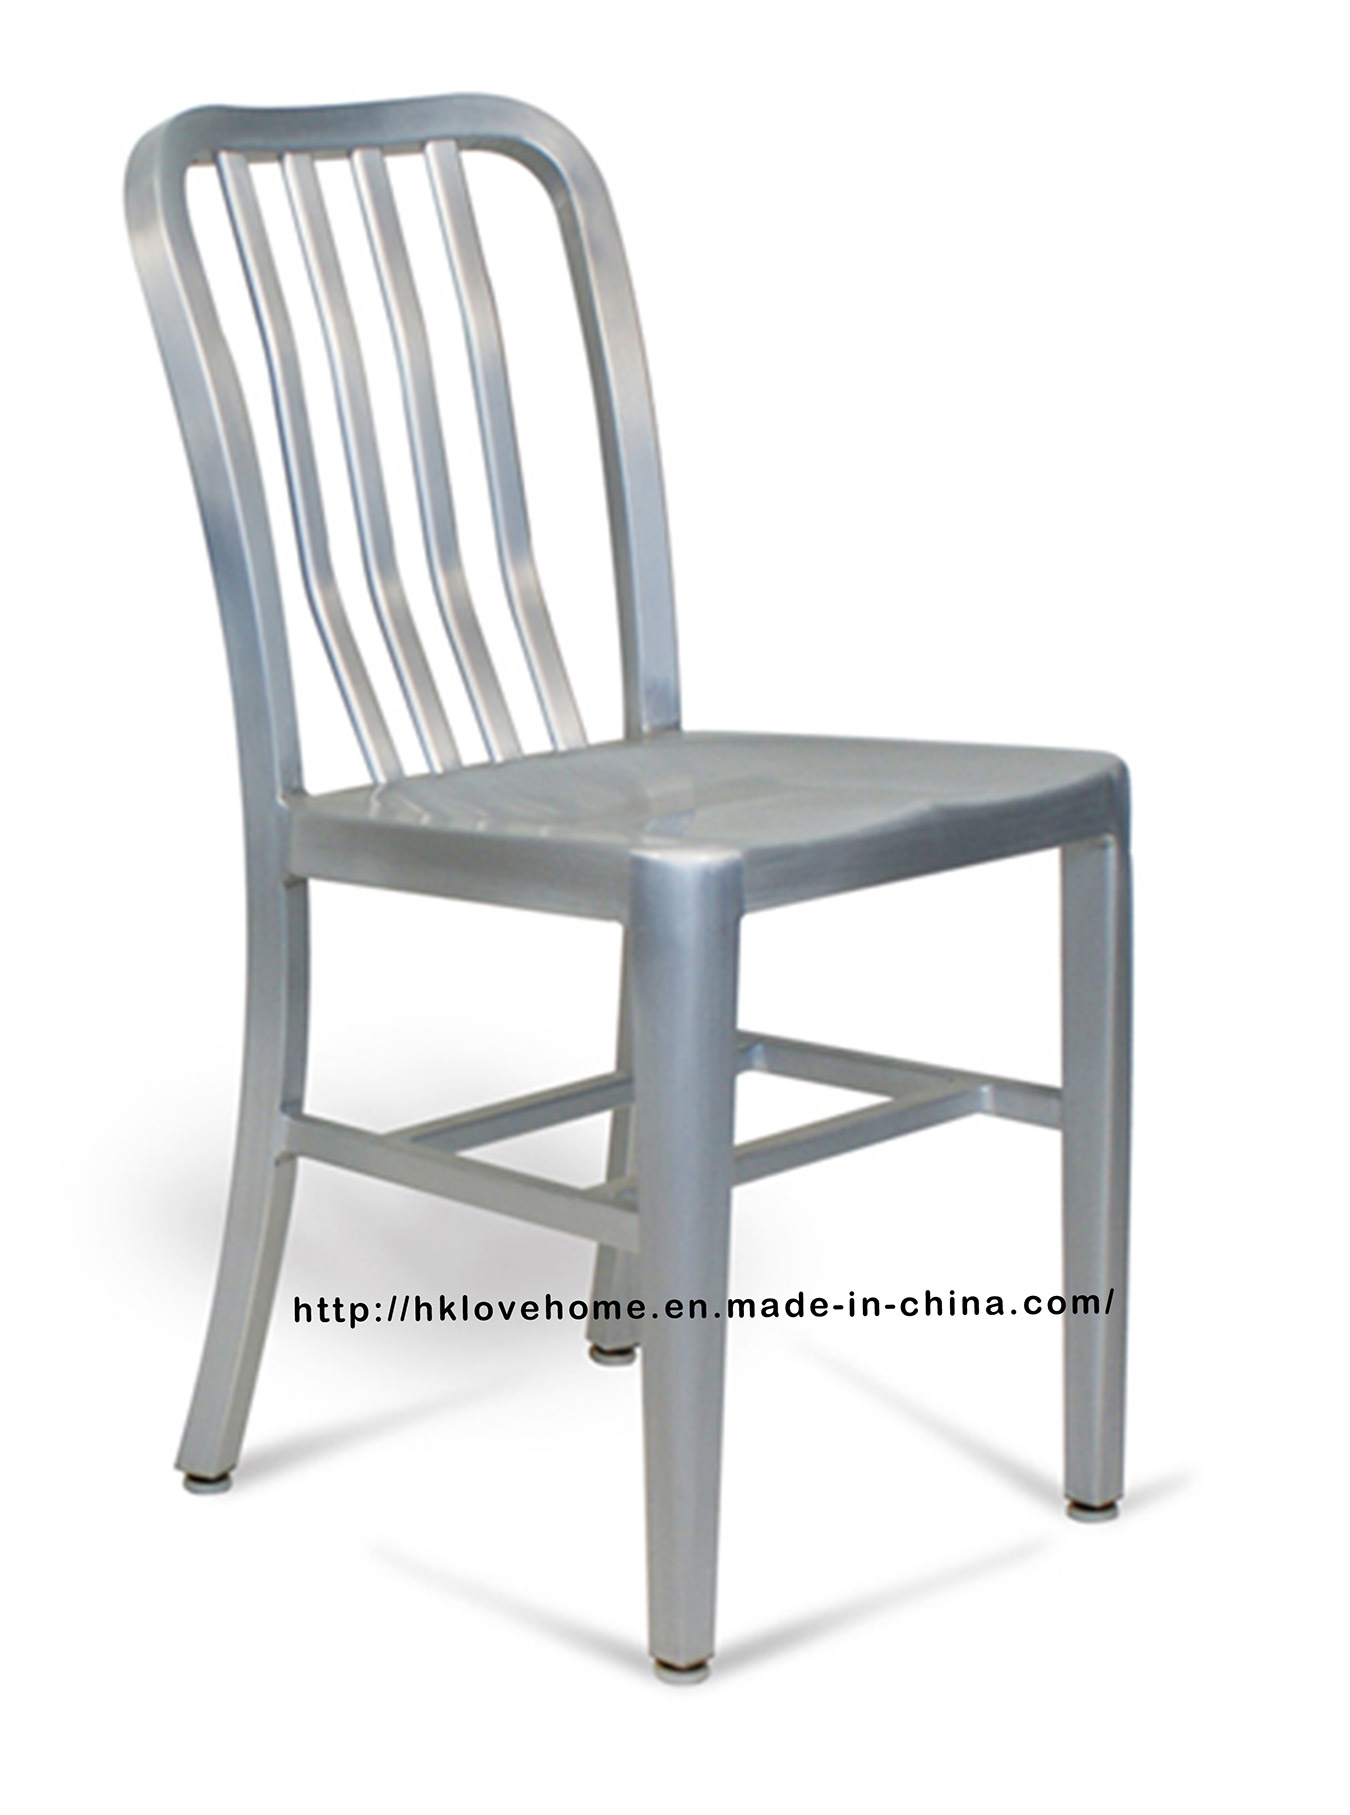 aluminum chair  hong kong love home products ltd  page  -